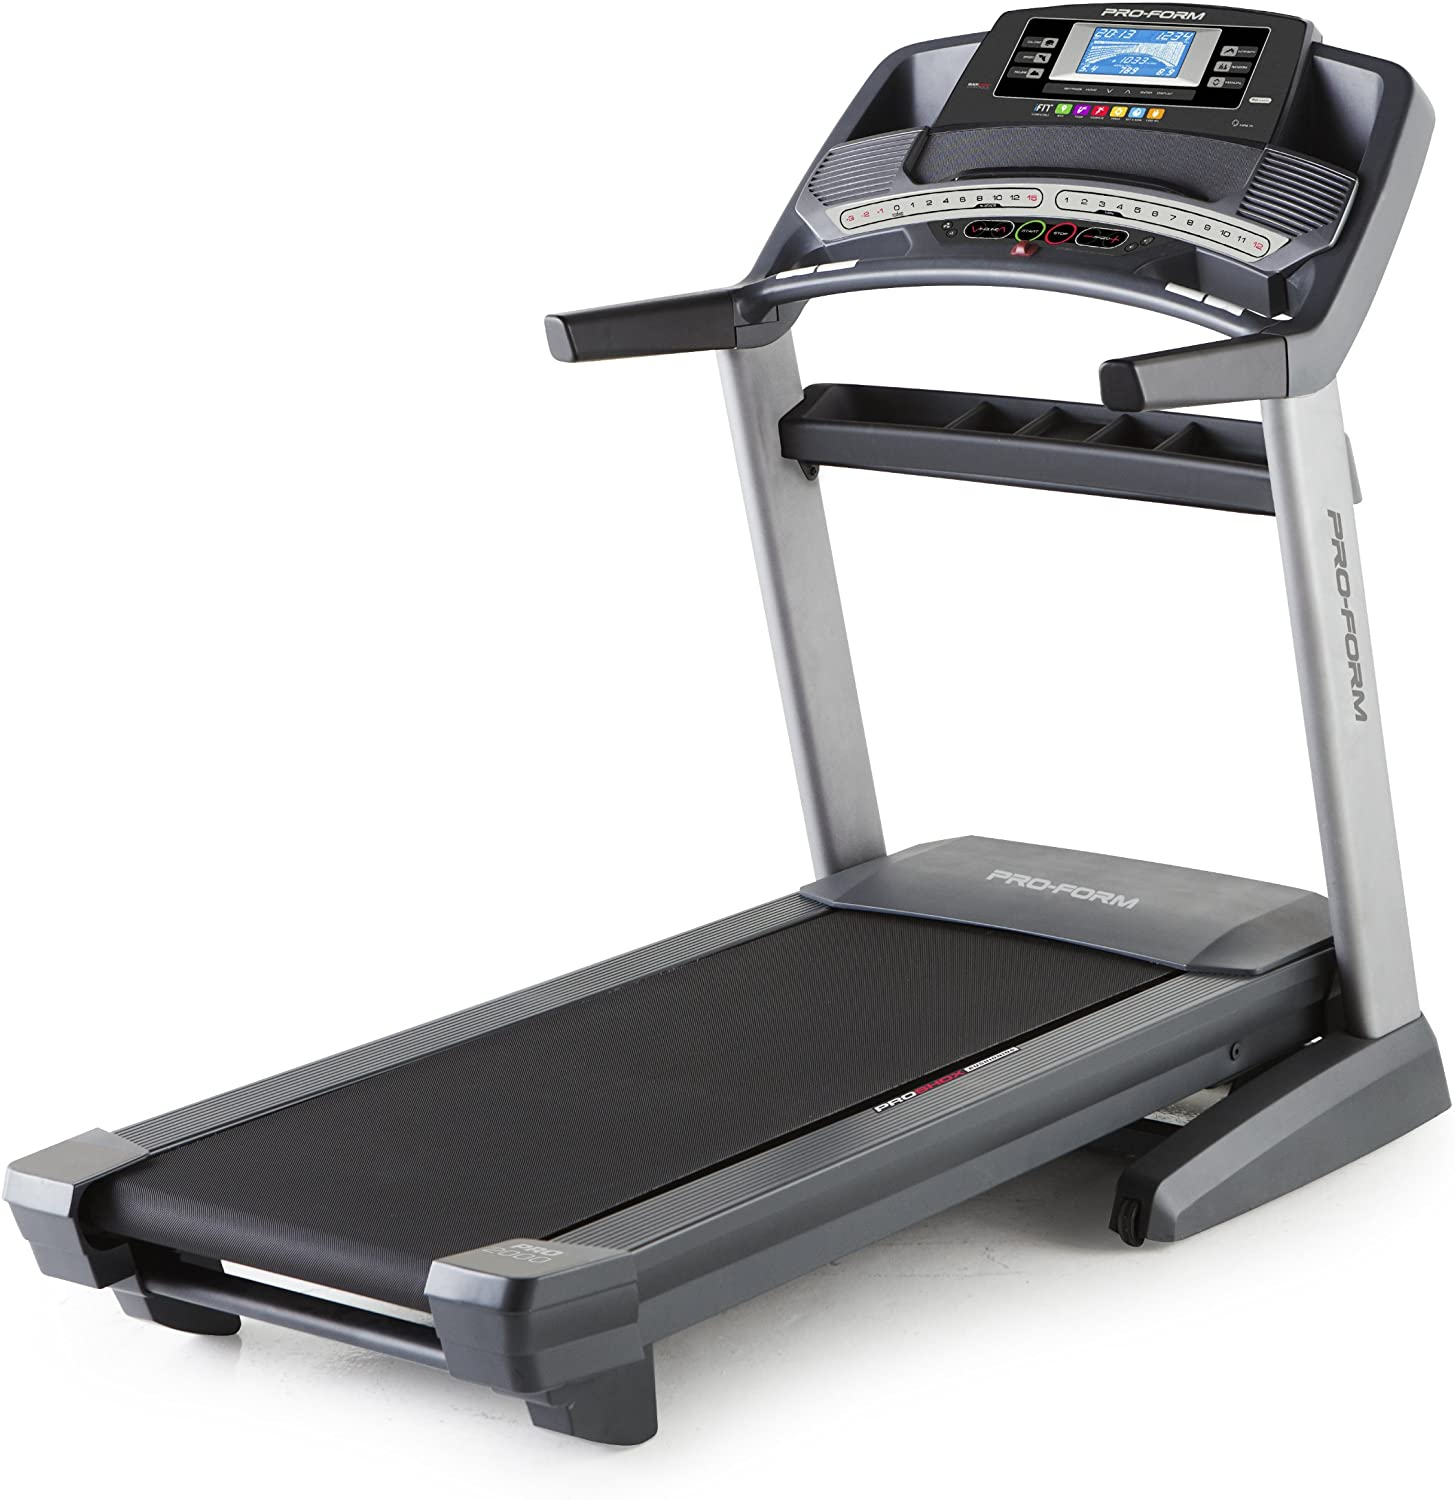 Treadmill Rental Near Me : Things You Should Know